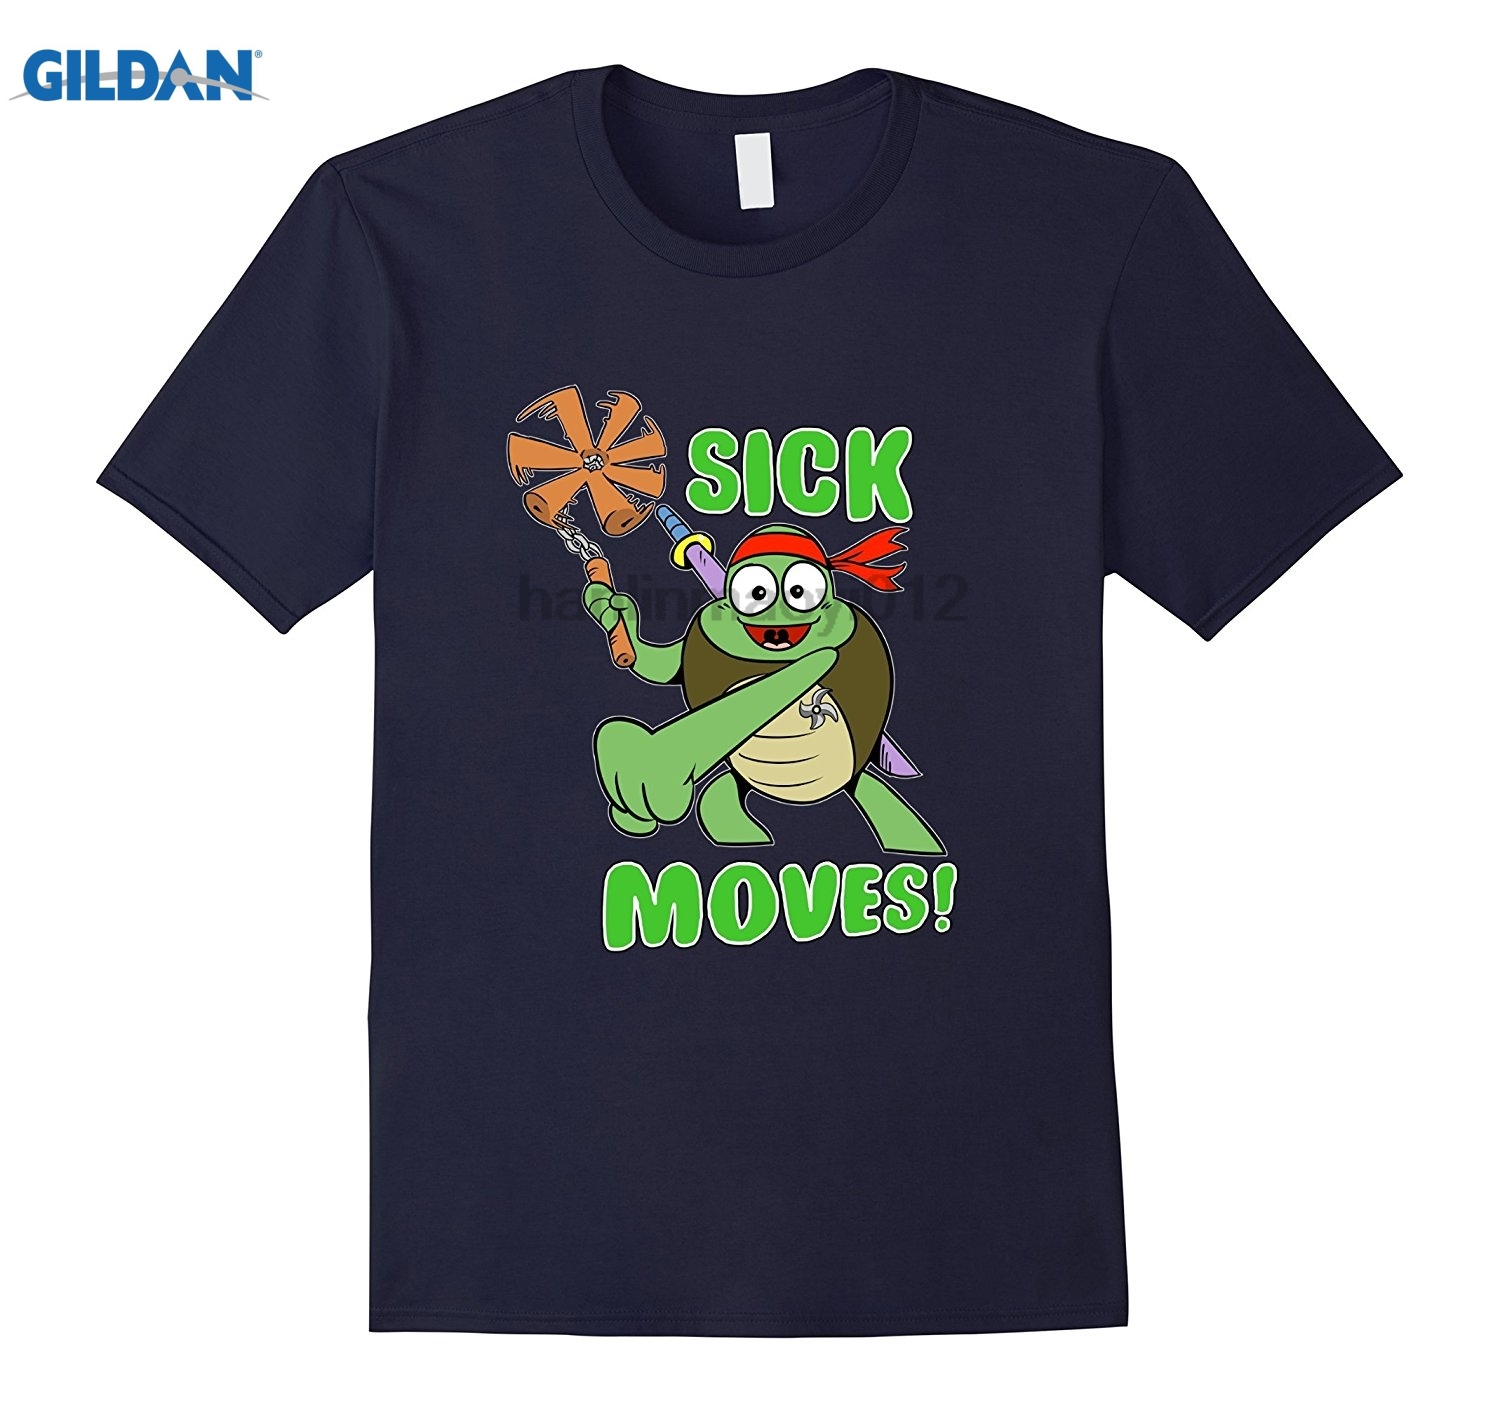 GILDAN Sick Moves! glasses Womens T-shirt